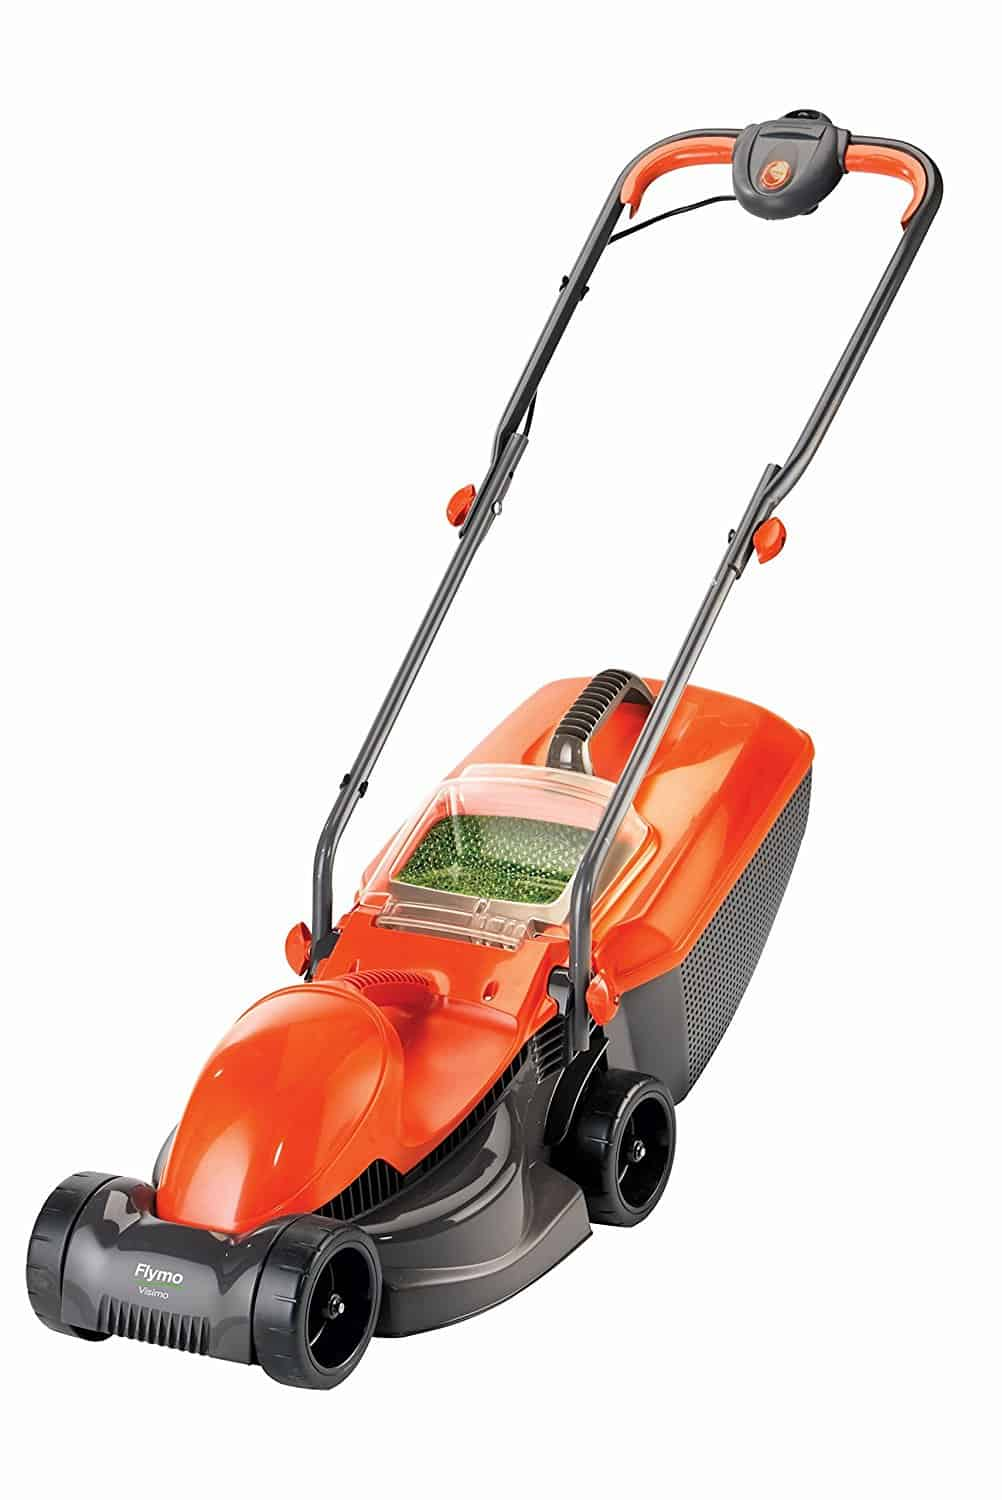 Best Electric Lawn Mower for Small Garden – Flymo